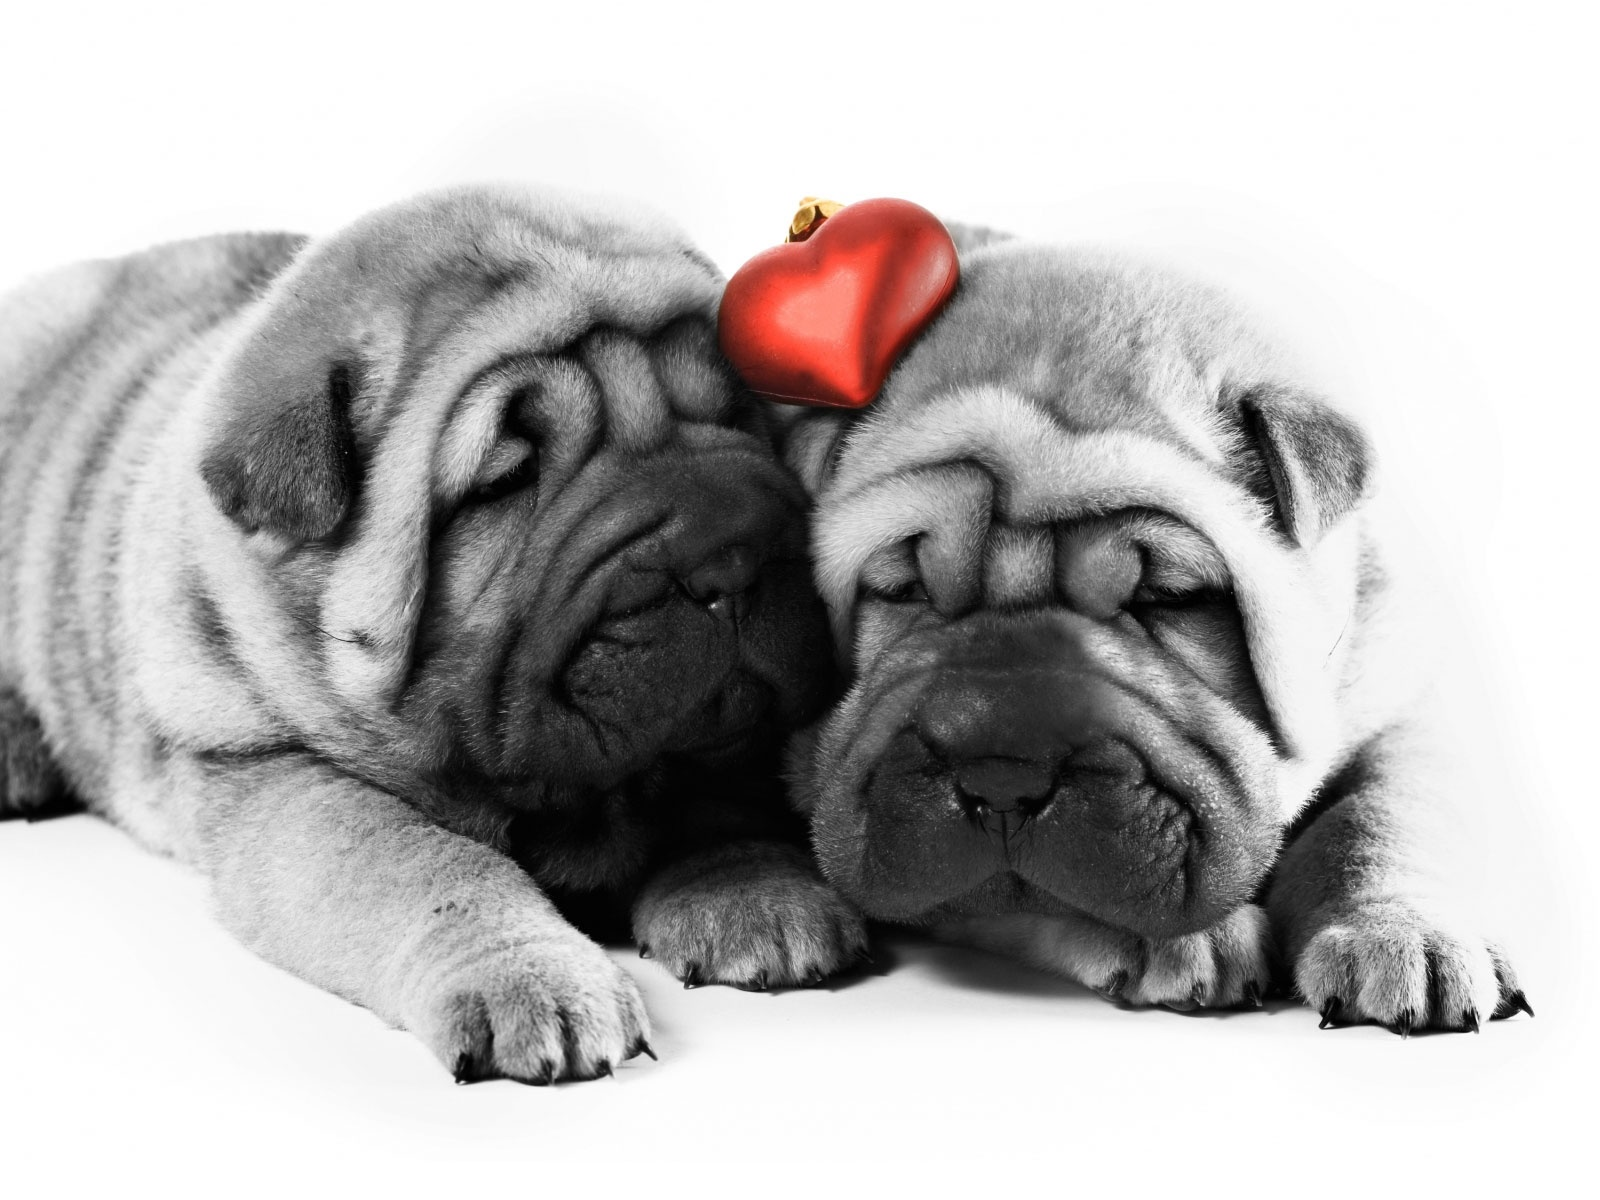 I Love Dogs Wallpaper - WallpaperSafari